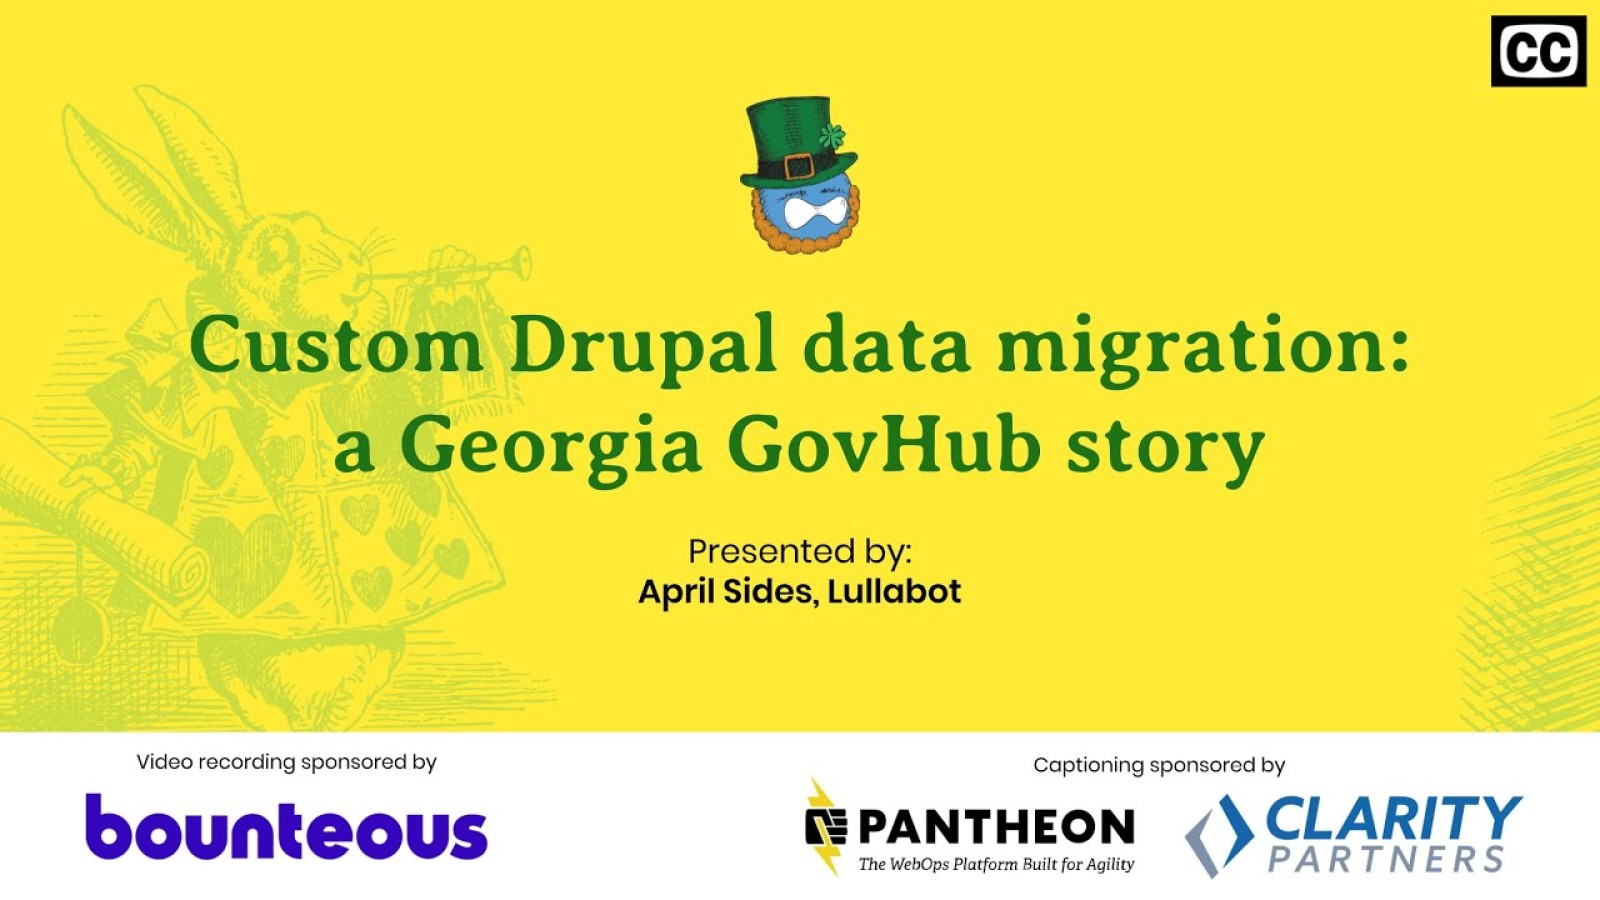 Custom Drupal Data Migration: A Georgia GovHUB Story